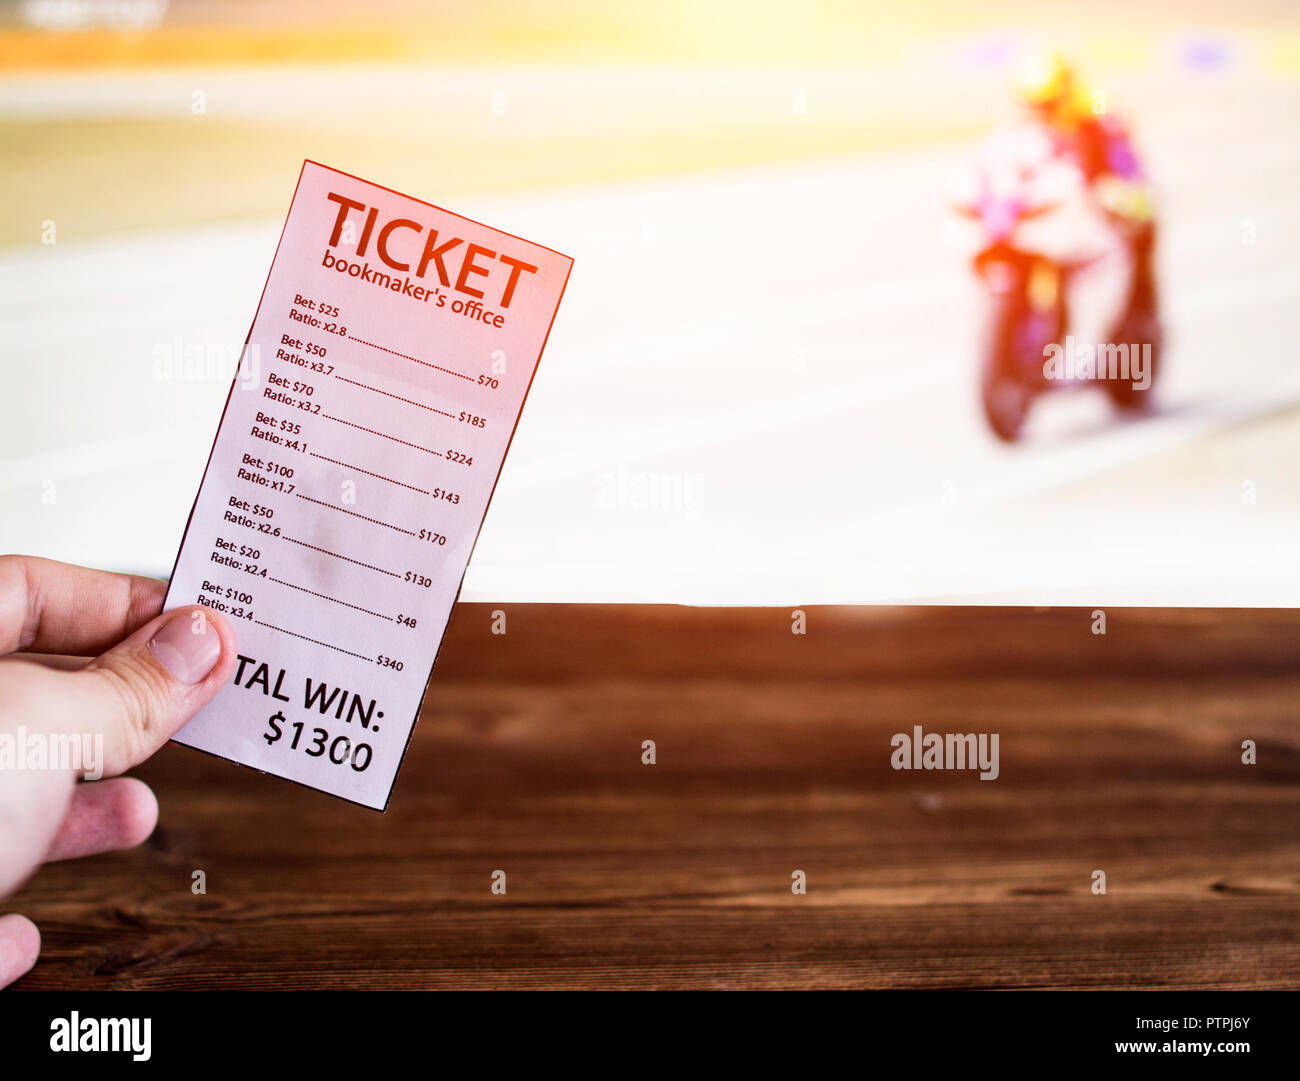 Bookmaker ticket on the background of the TV on which show motorcycle racing, sports betting, Bookmaker ticket and motorcycle races - Stock Image